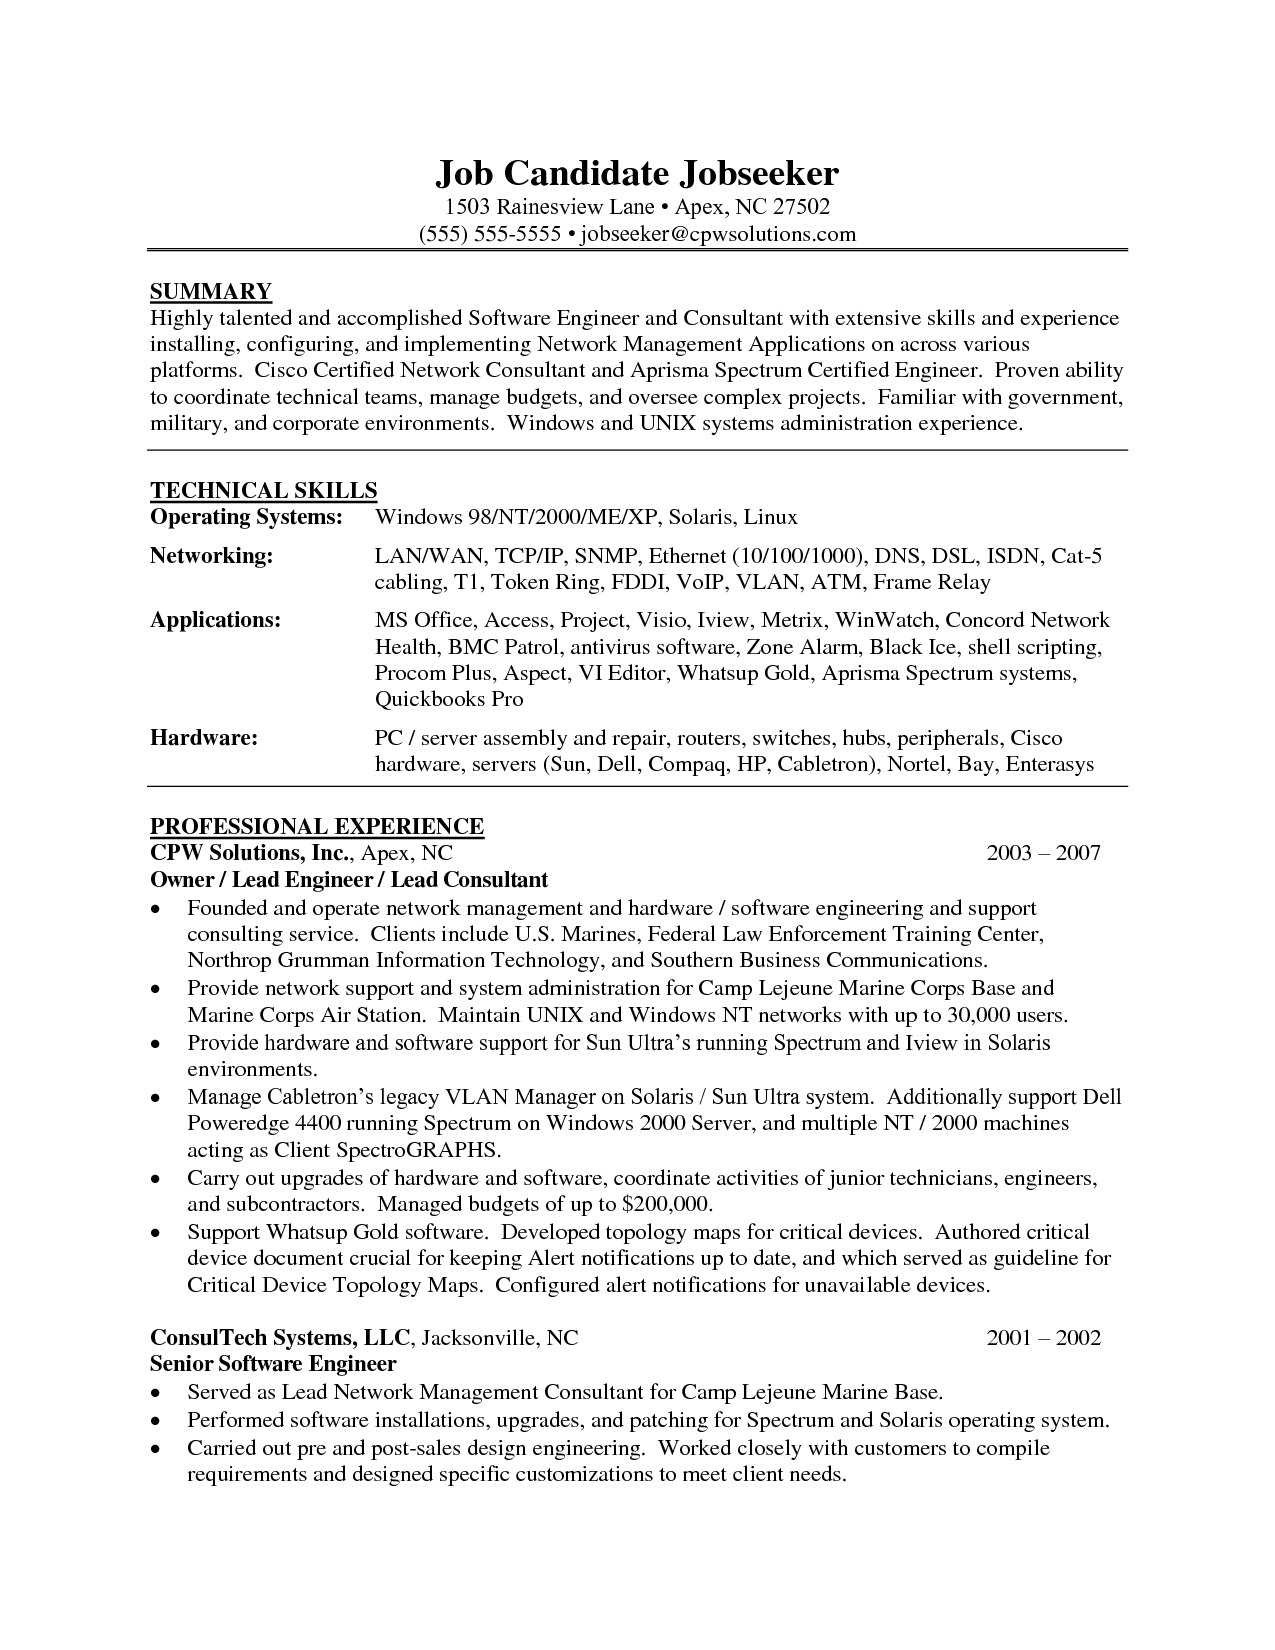 Resume summary engineer sainde org software quality assurance resume builder free print resume print a resume form website free resume template free yelopaper Choice Image